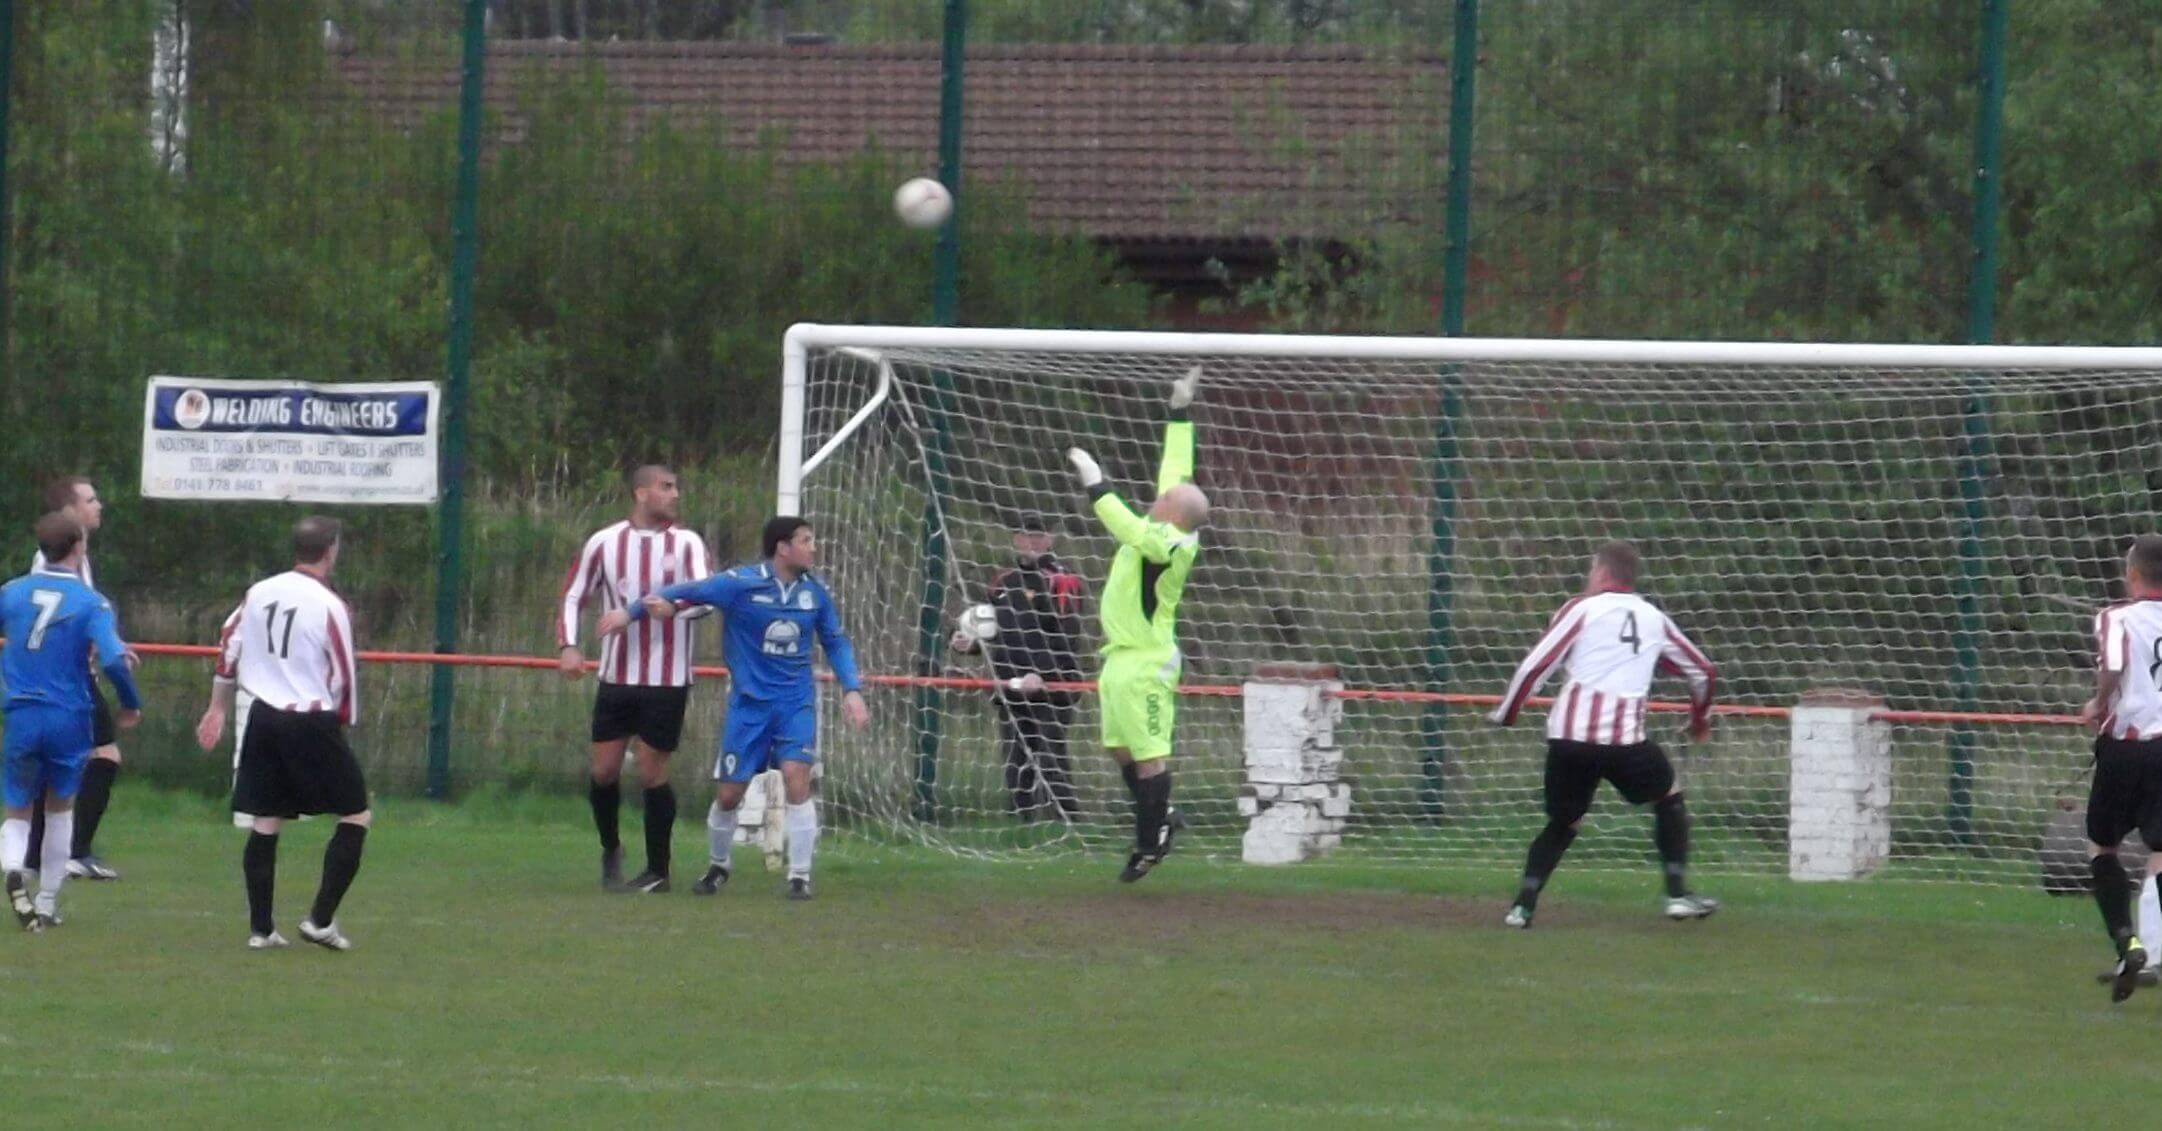 Benburb Free kick beats Moss